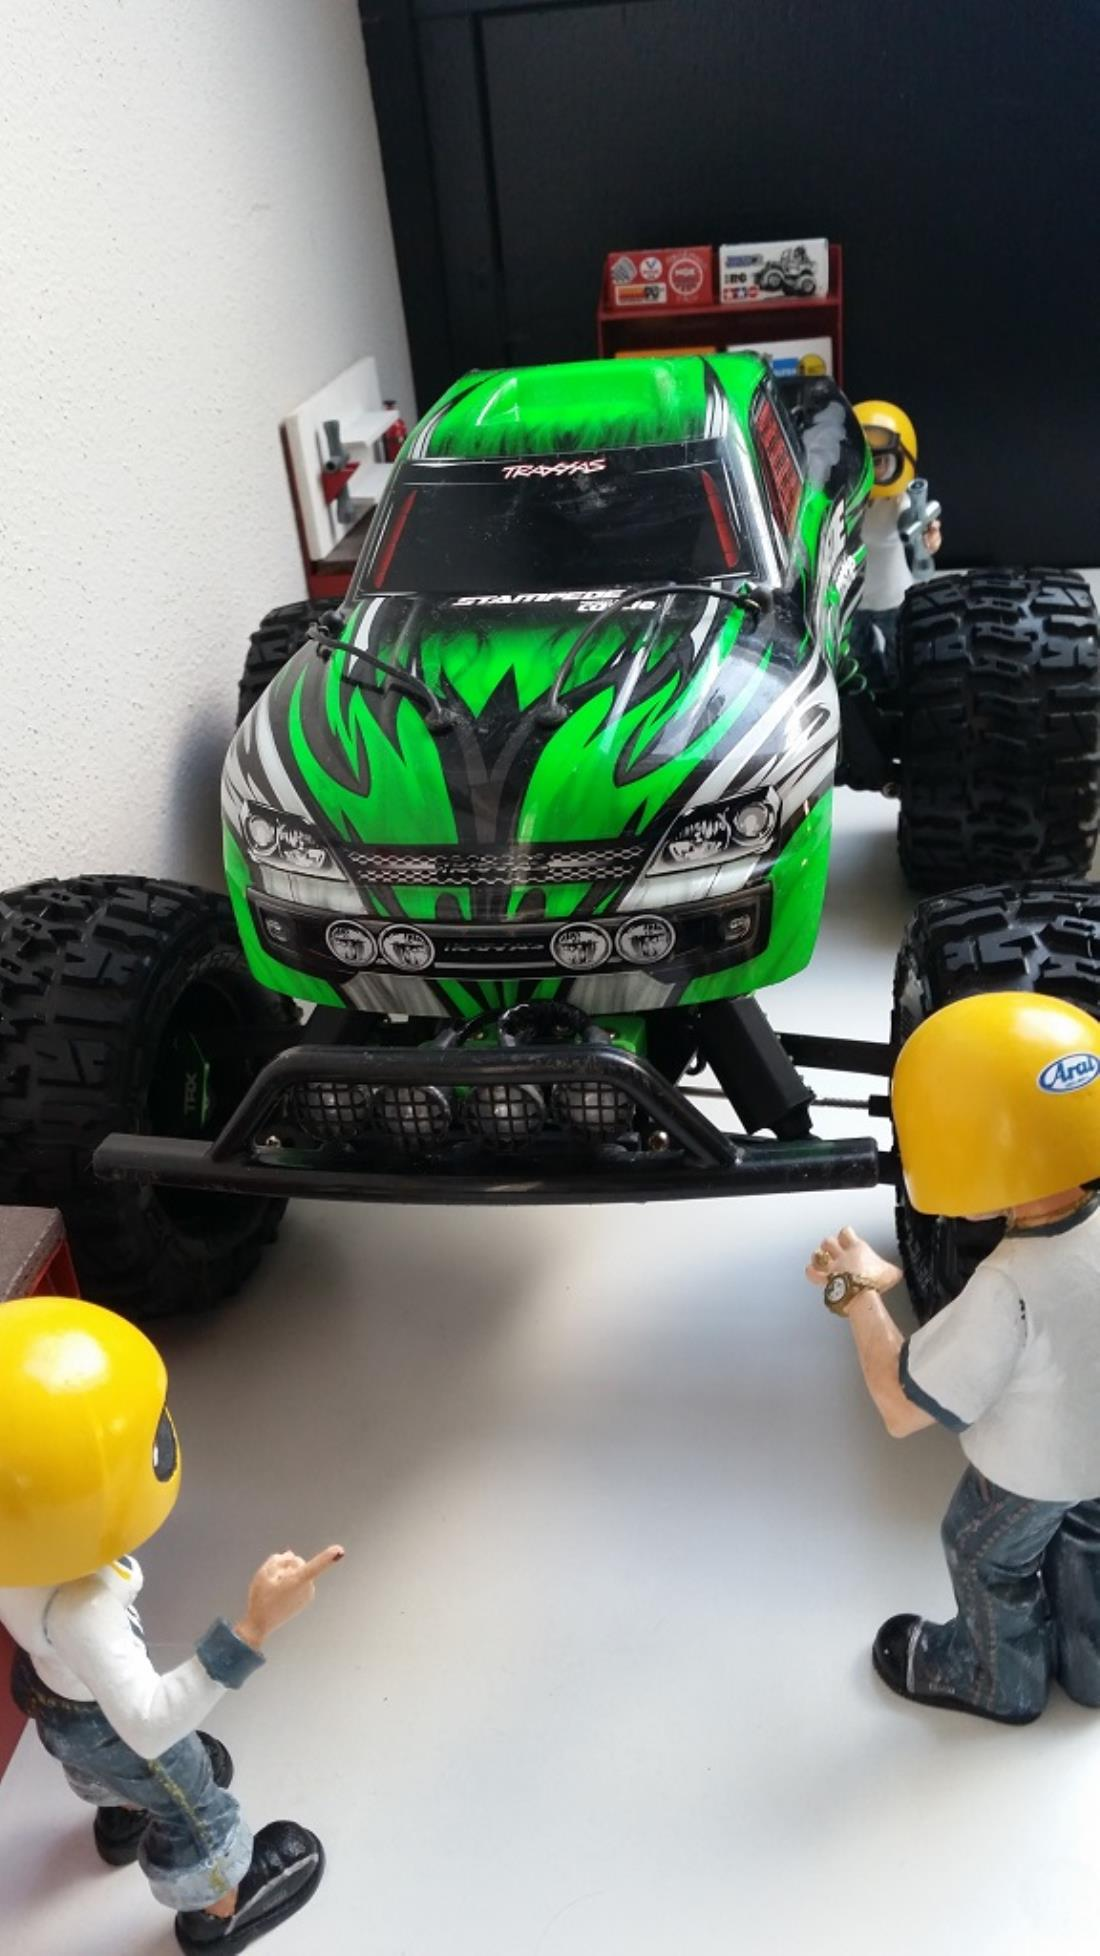 They are also the mounts for the RPM Slash rear light kit LED kit RPM black front and rear bearing carriers Traxxas green TRX aluminium caster